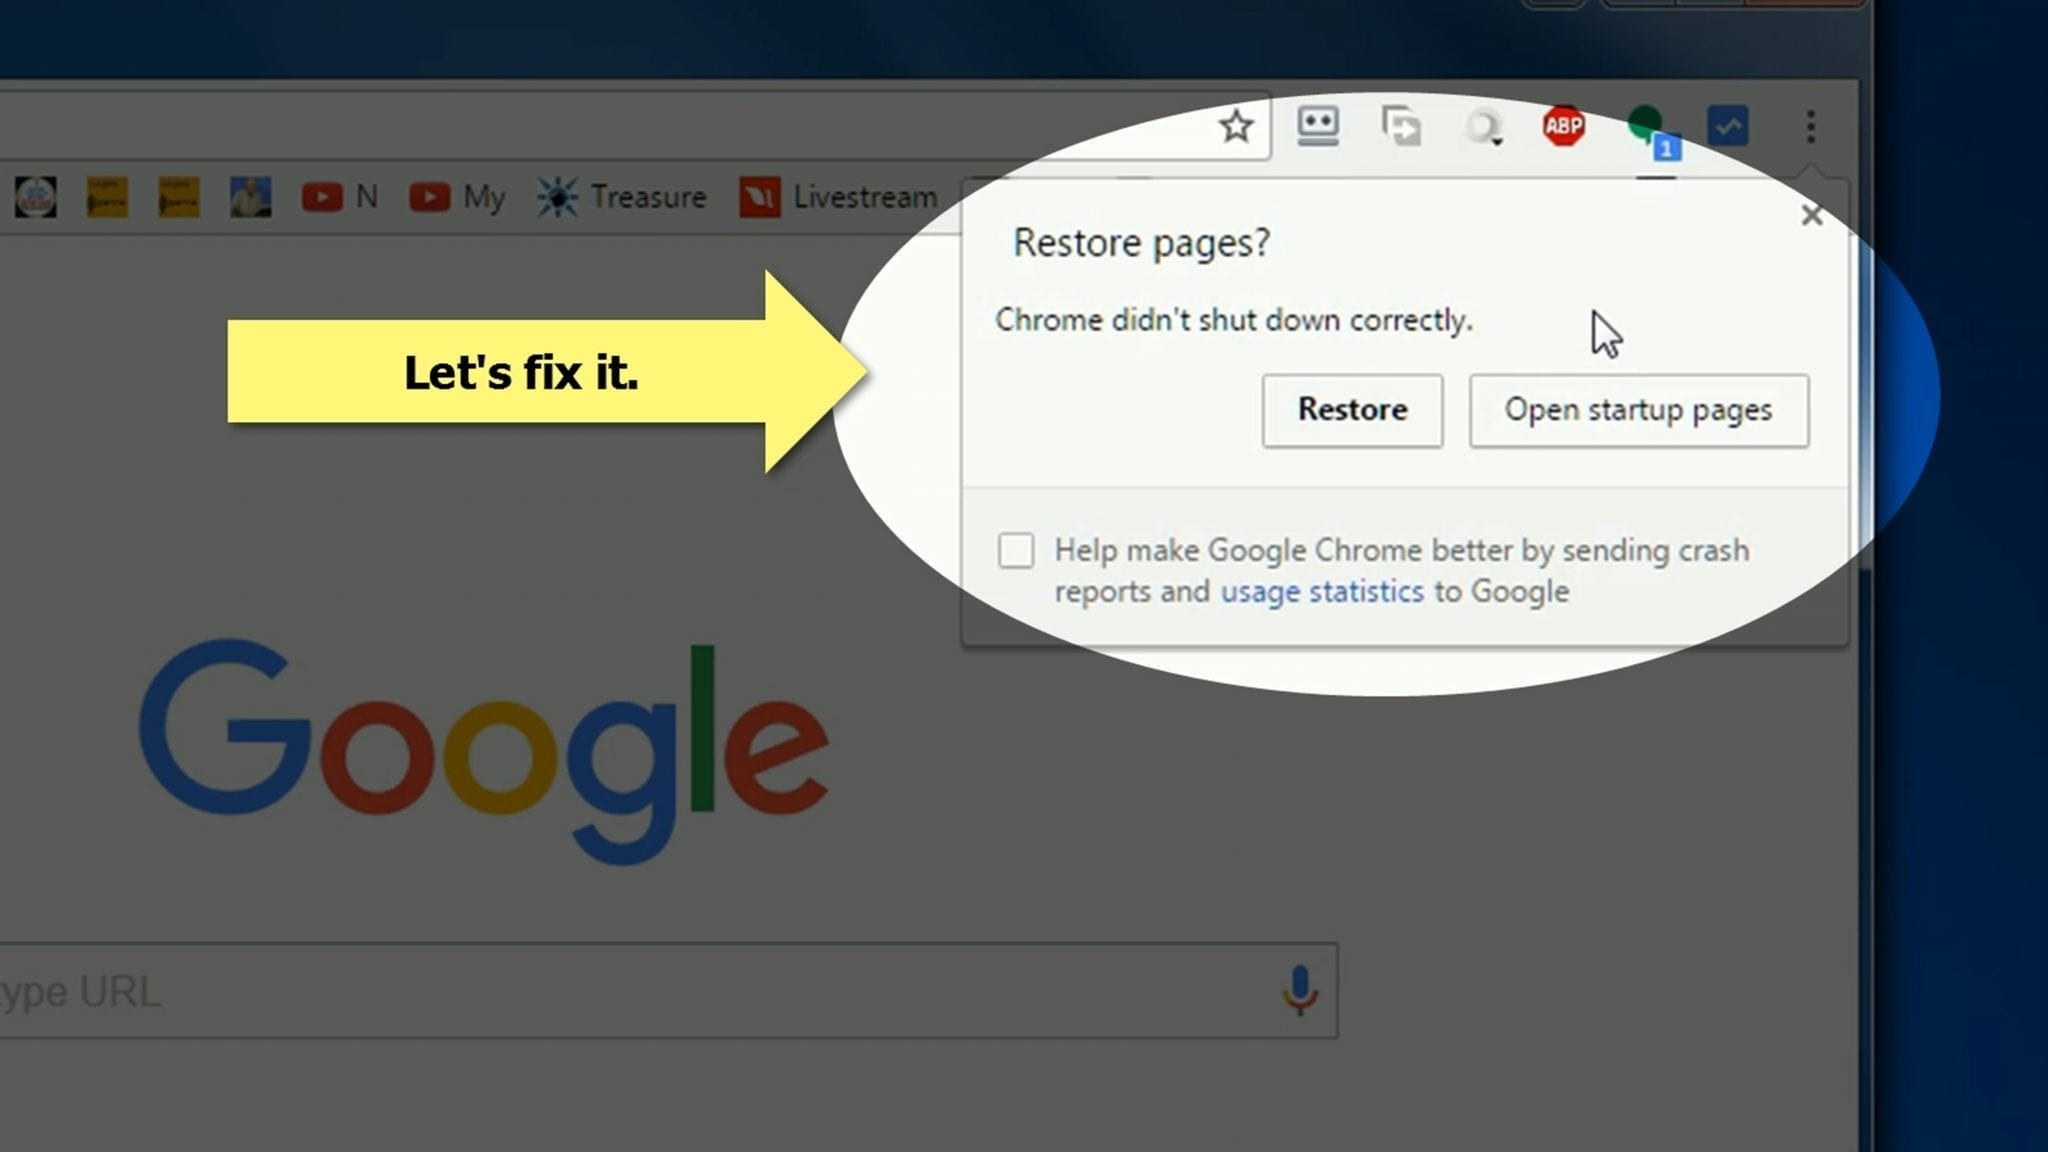 Chrome didnt shut down correctly solved